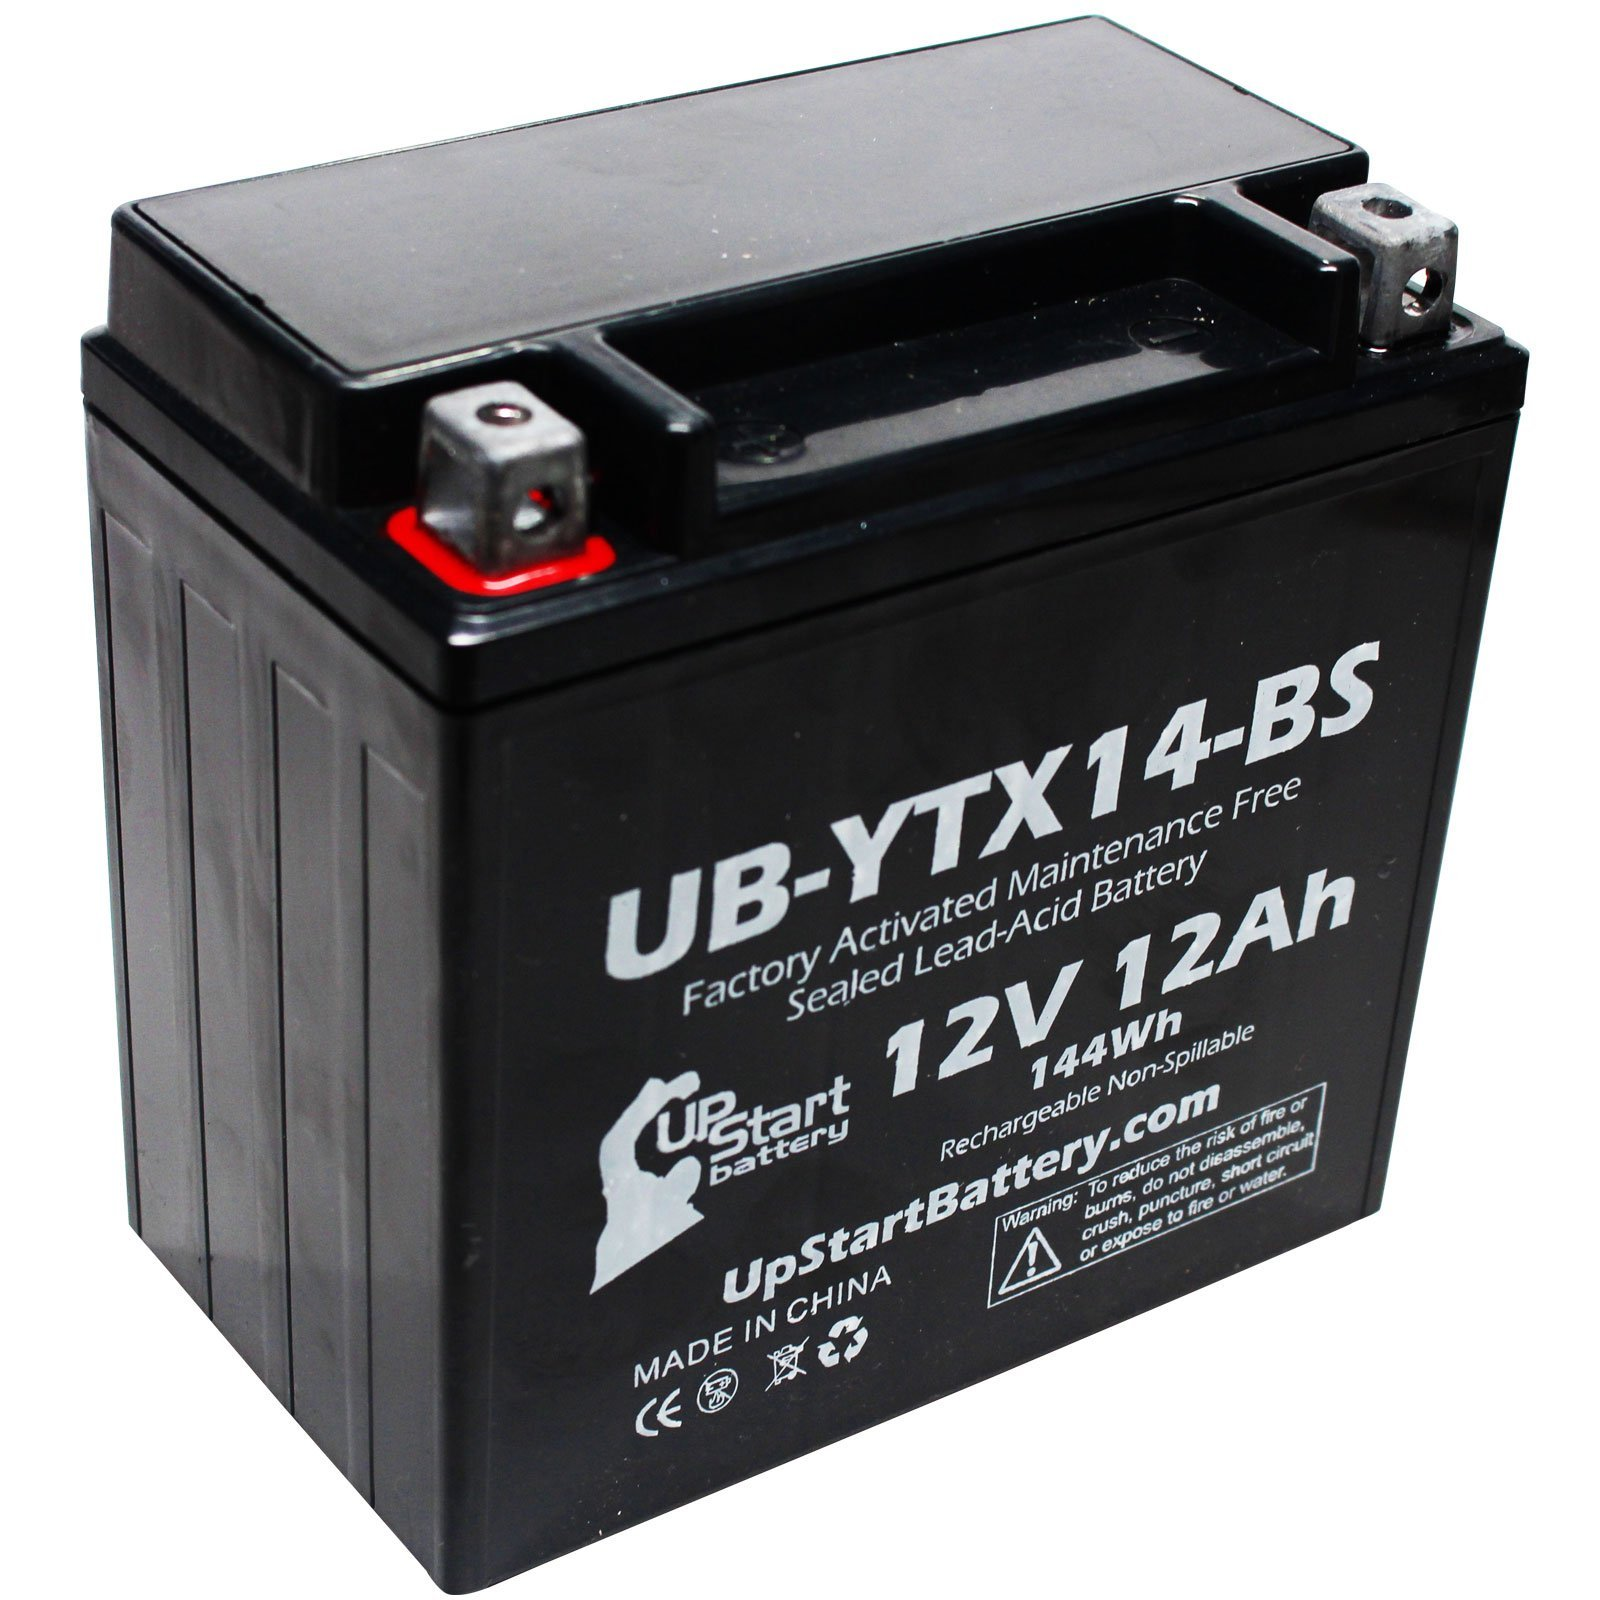 YTX14-BS Battery Replacement (12Ah, 12v, Sealed) Factory Activated, Maintenance Free Battery Compatible with - 2006 Yamaha Apex, 2008 Yamaha Apex, 2011 Yamaha Apex, 2007 Yamaha Apex, 2009 Buell Blast by UpStart Battery